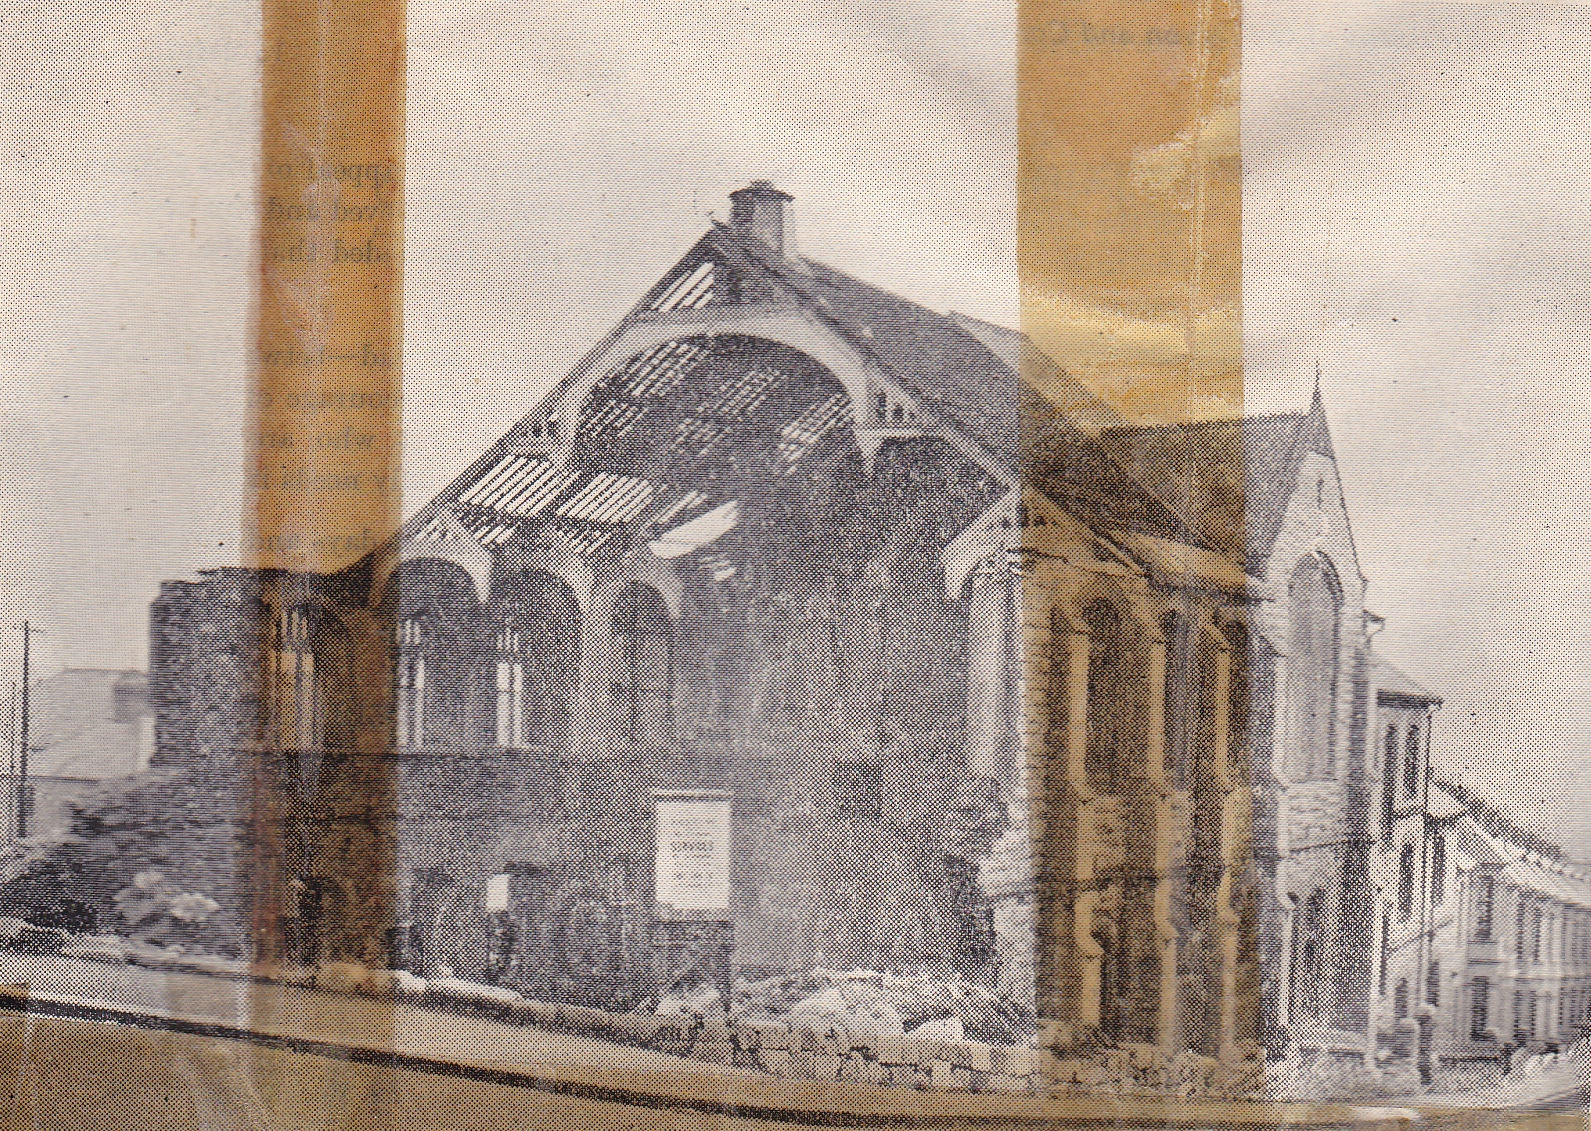 The Church After Being Hit by a Bomb in 1943